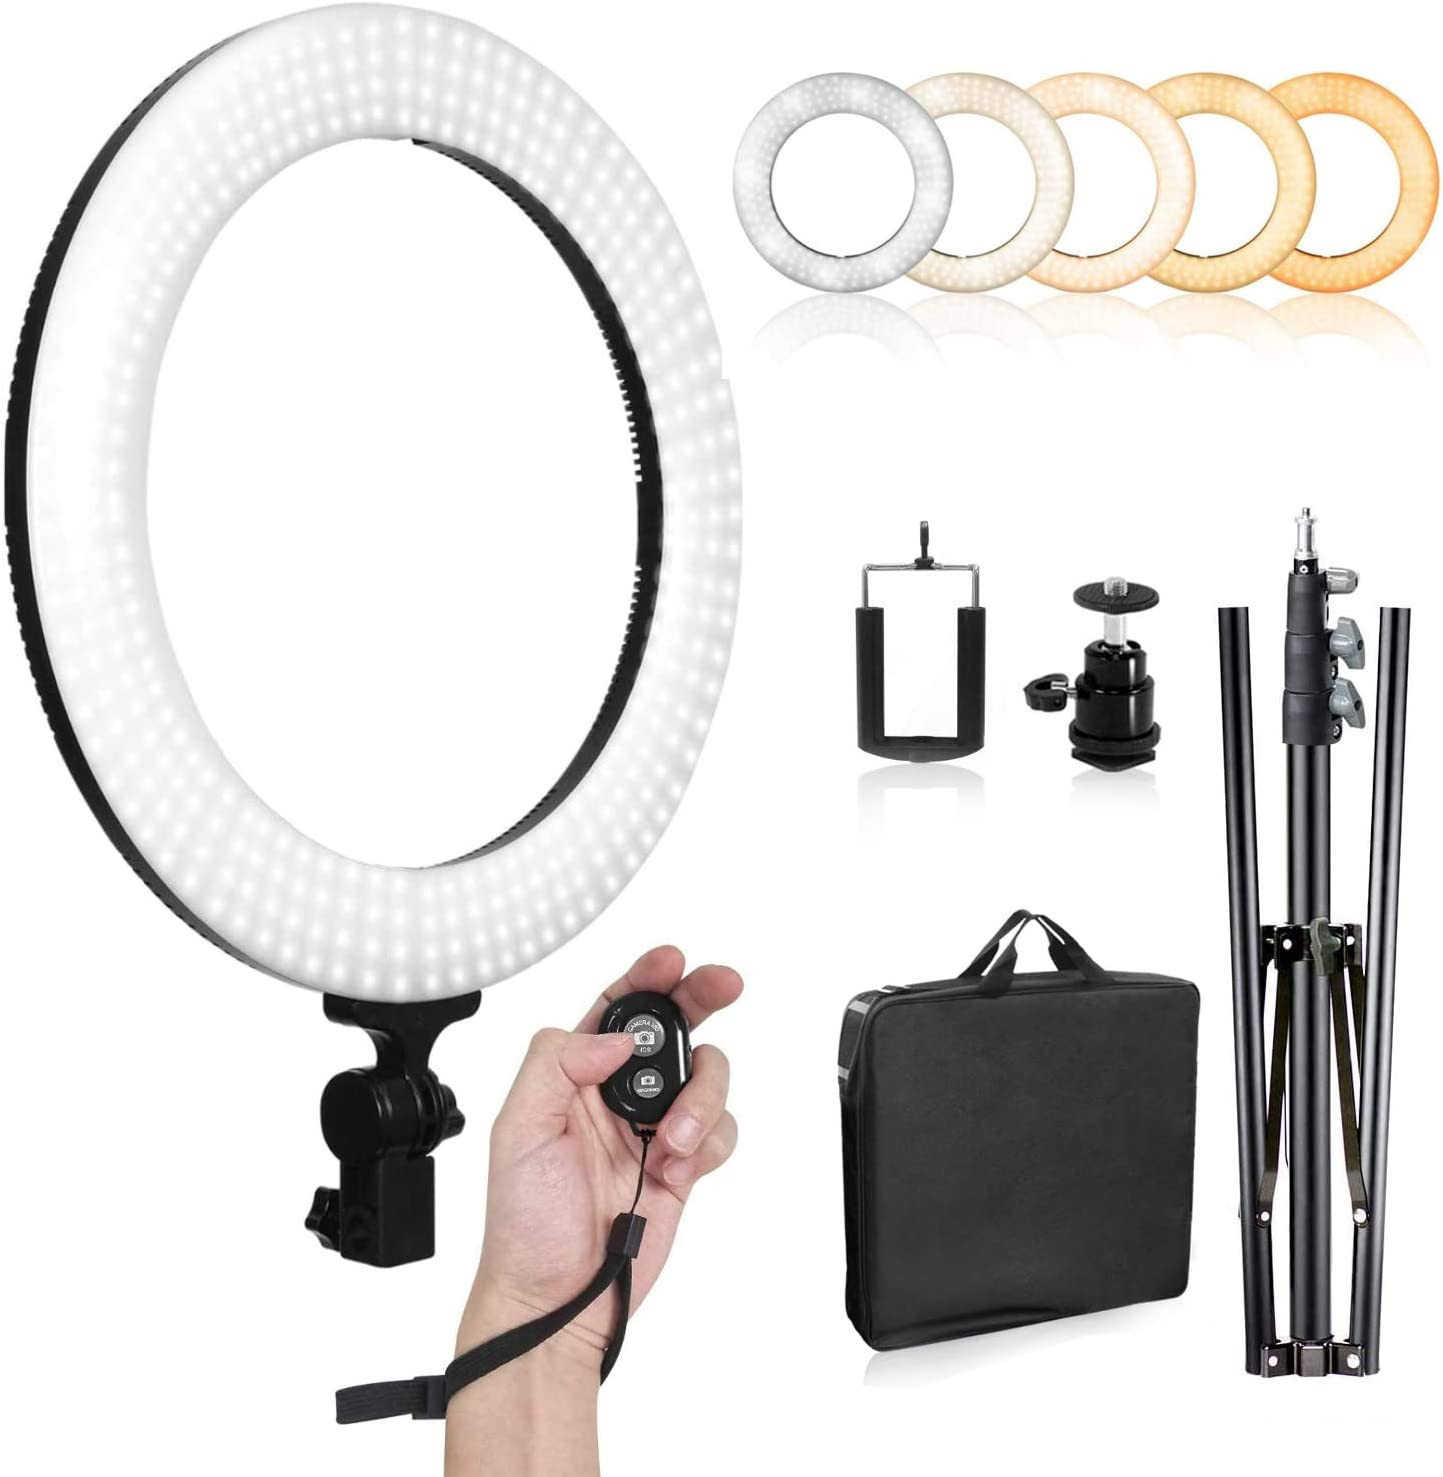 LIMOSTUDIO 14 inch. LED Ring Light Tripod Indianapolis Mall with Stand Color Max 82% OFF Dual